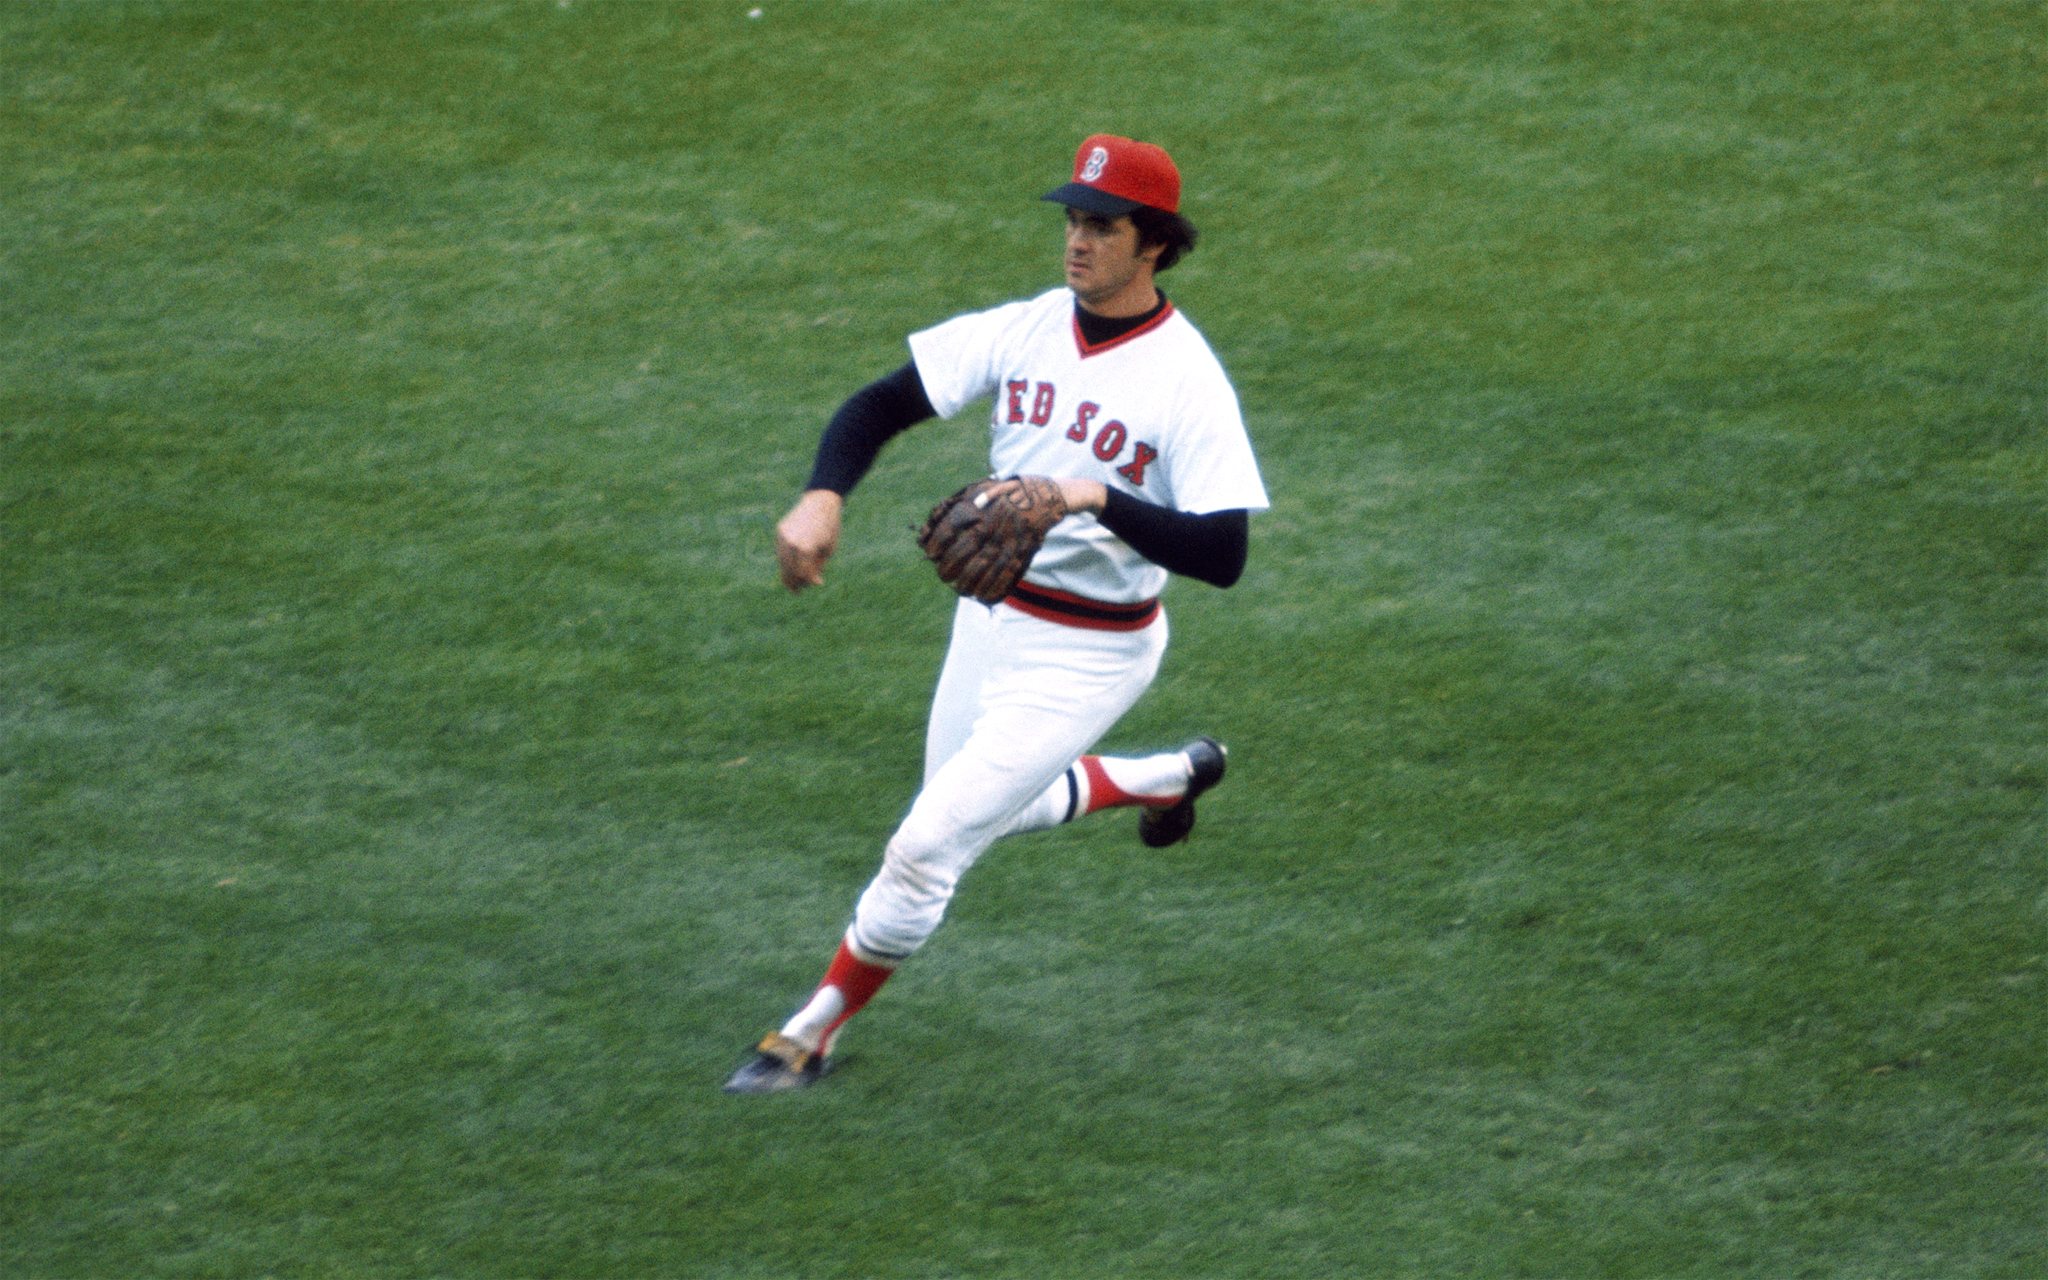 Dwight Evans 1975 World Series Game 6 Greatest Of